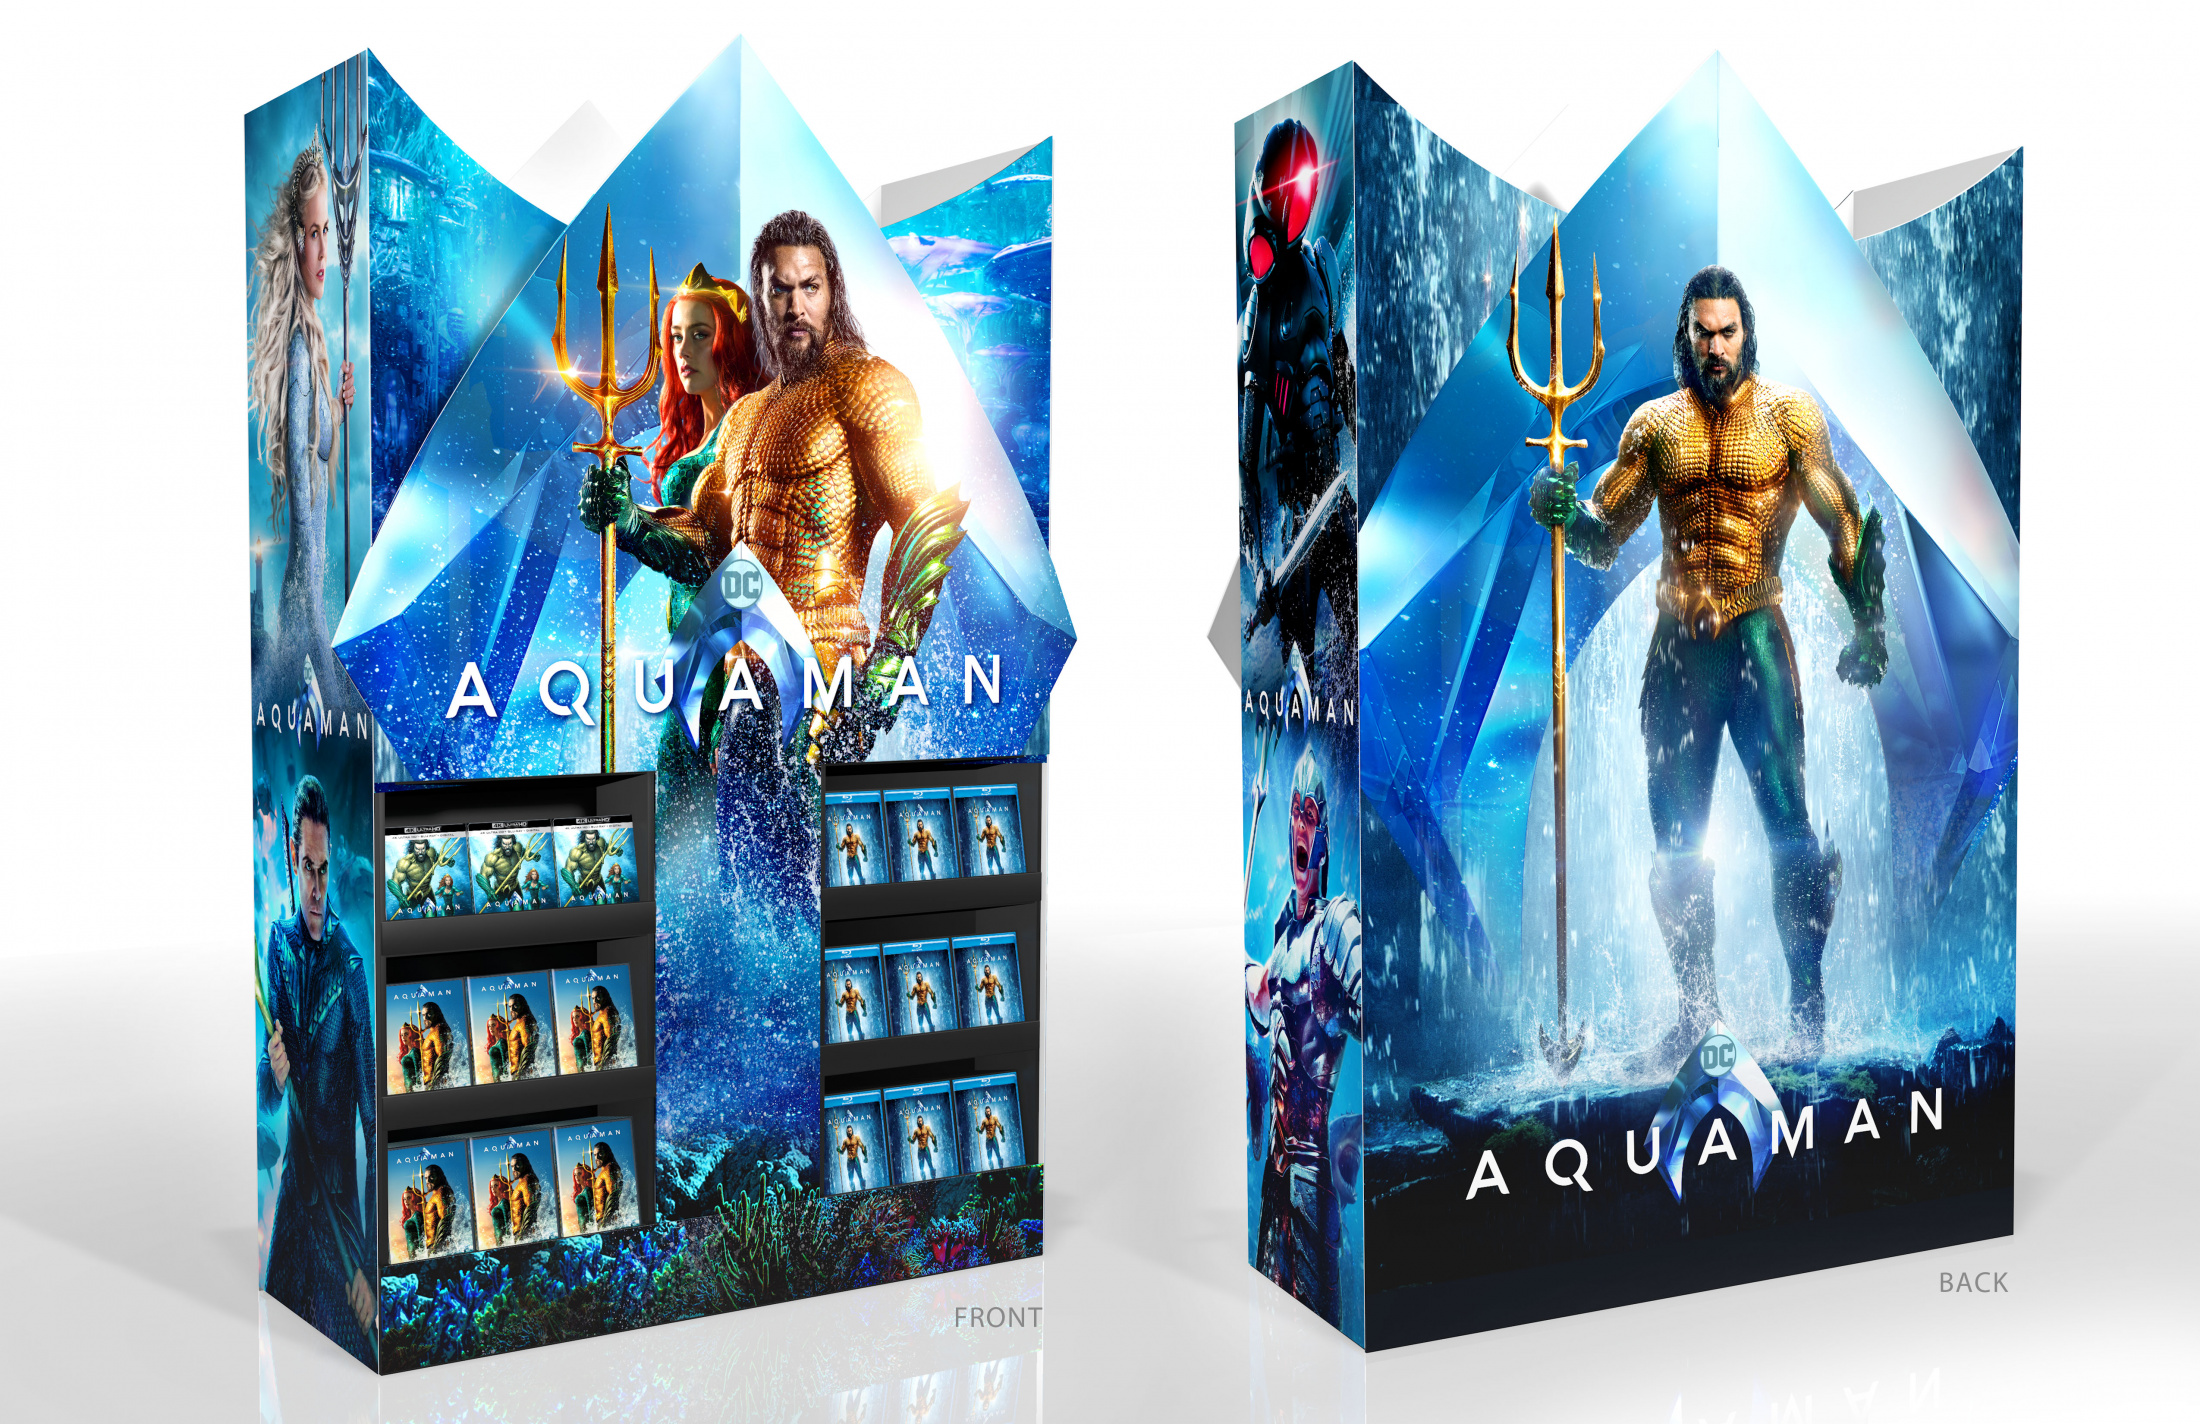 Thumbnail for Aquaman Home Entertainment Best Buy Display Mini Wow Cube